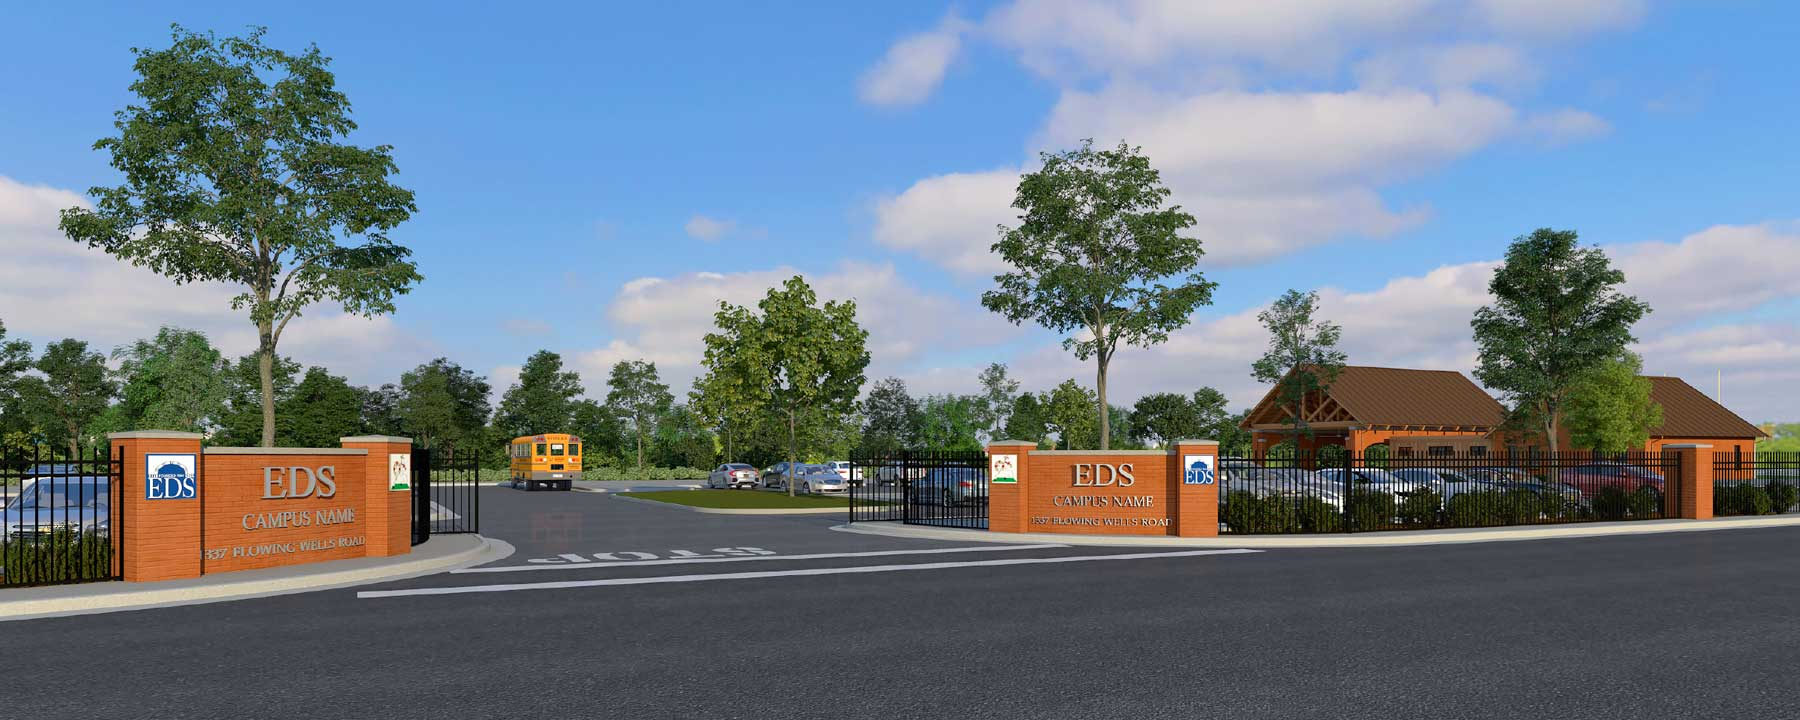 Flowing Wells Campus Entrance Rendering